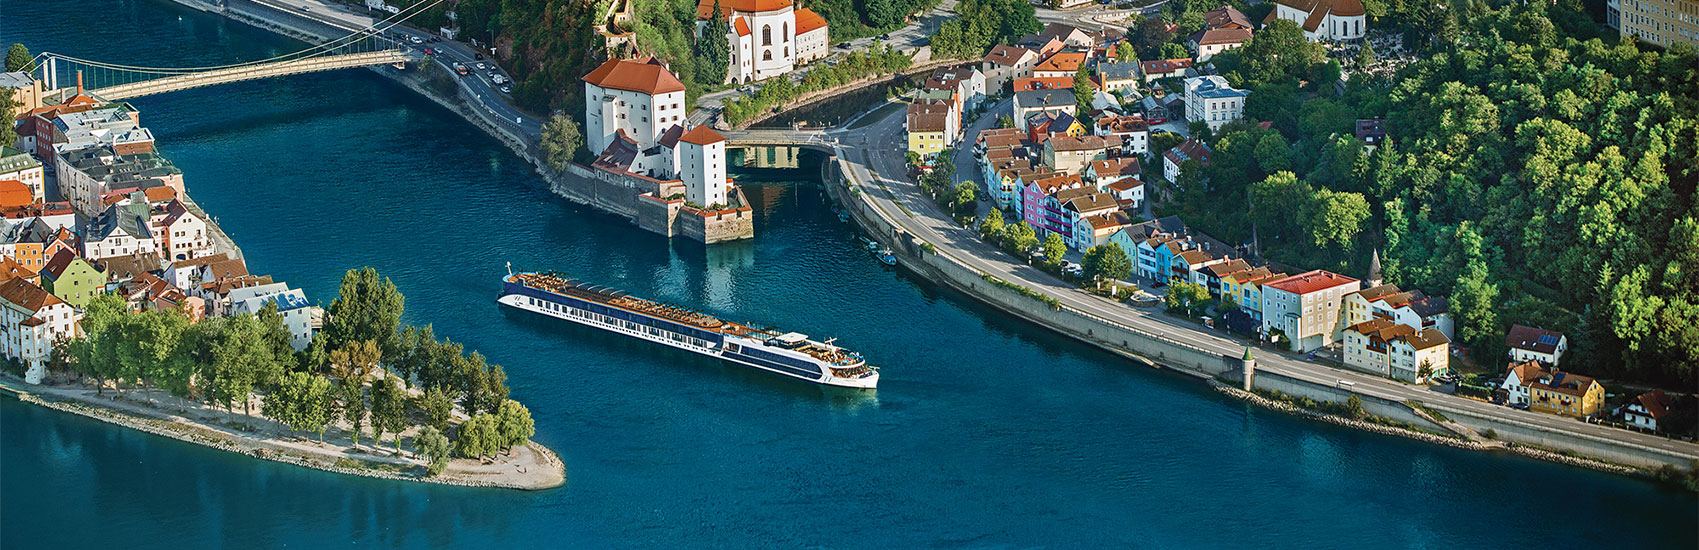 Europe River Cruise Savings with AmaWaterways 0